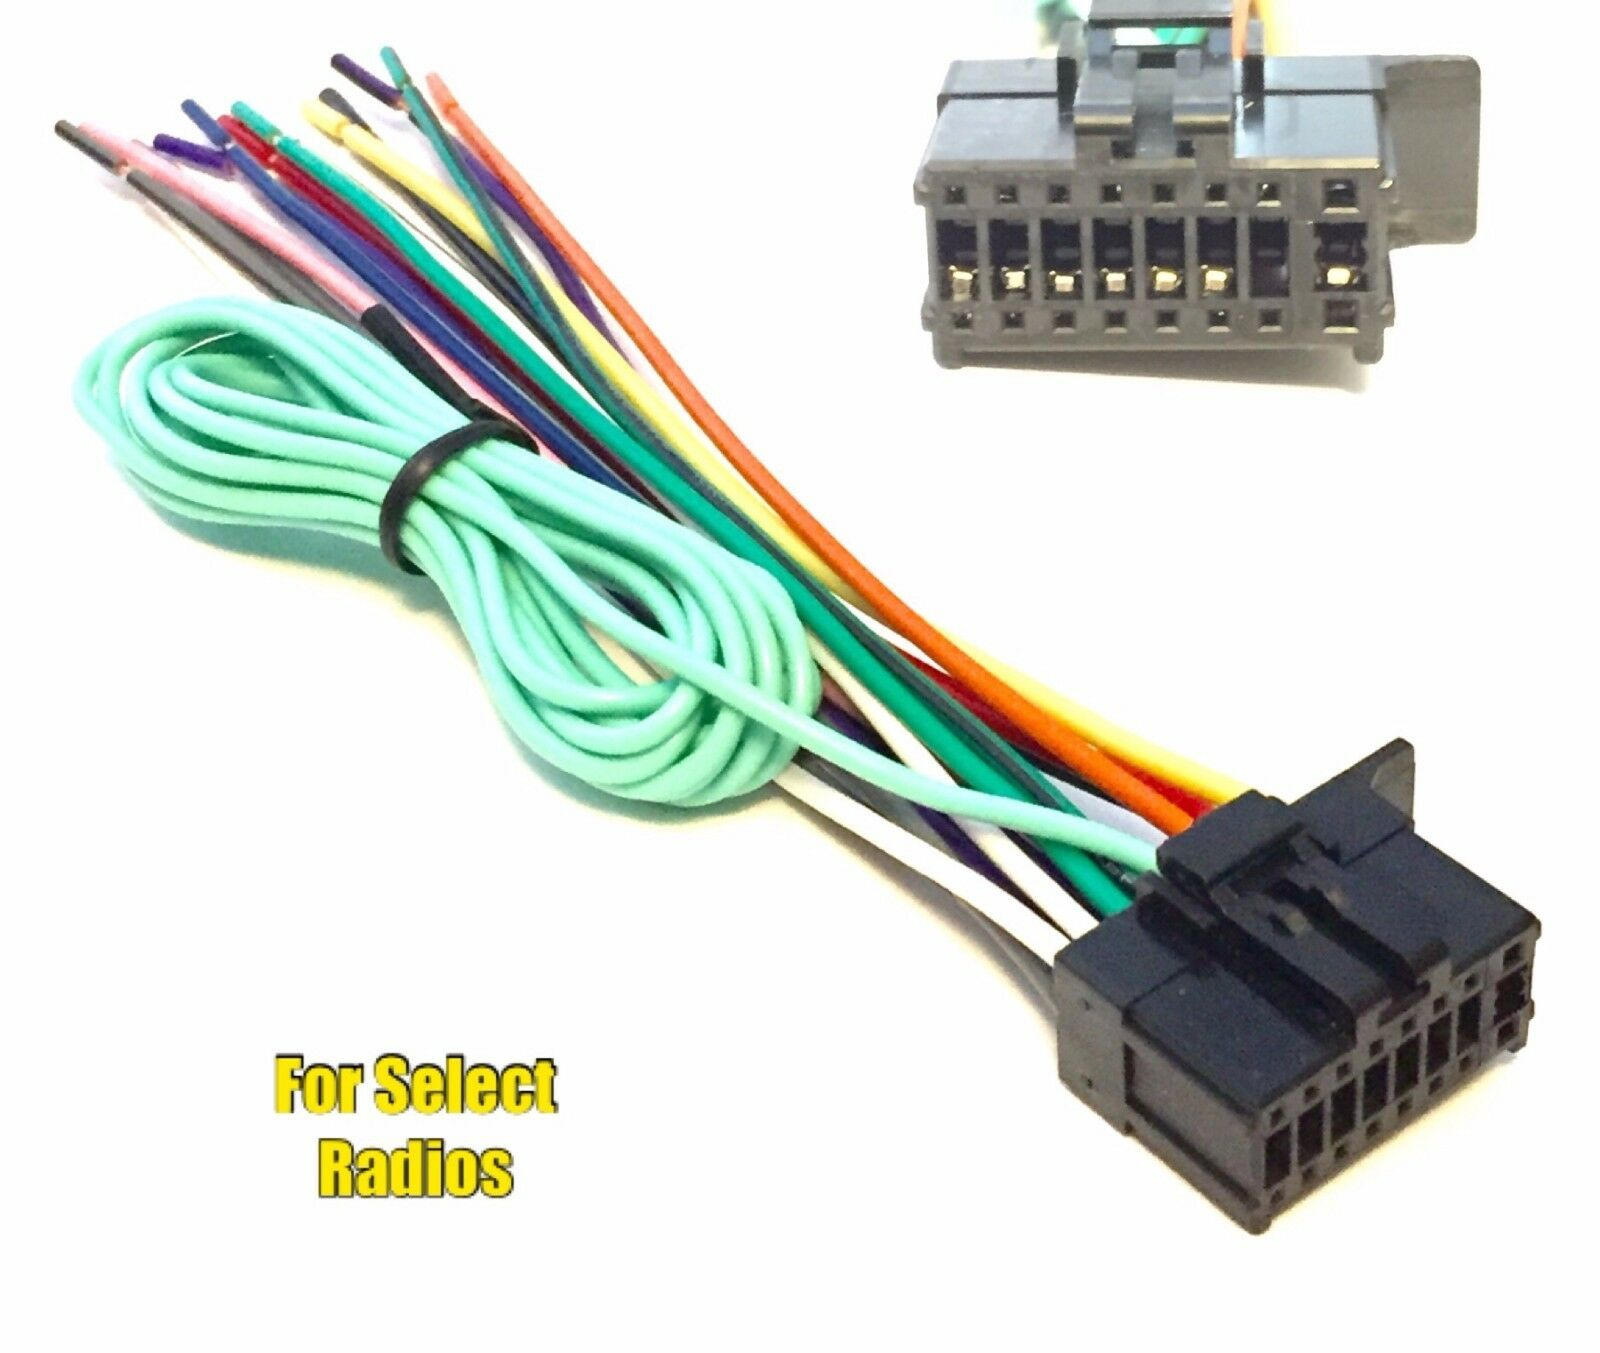 Radio Wiring Harness Electrical Schematics Diagram Universal Car Stereo Wire Plug For Pioneer Avh X5700bhs Freightliner 1 Of